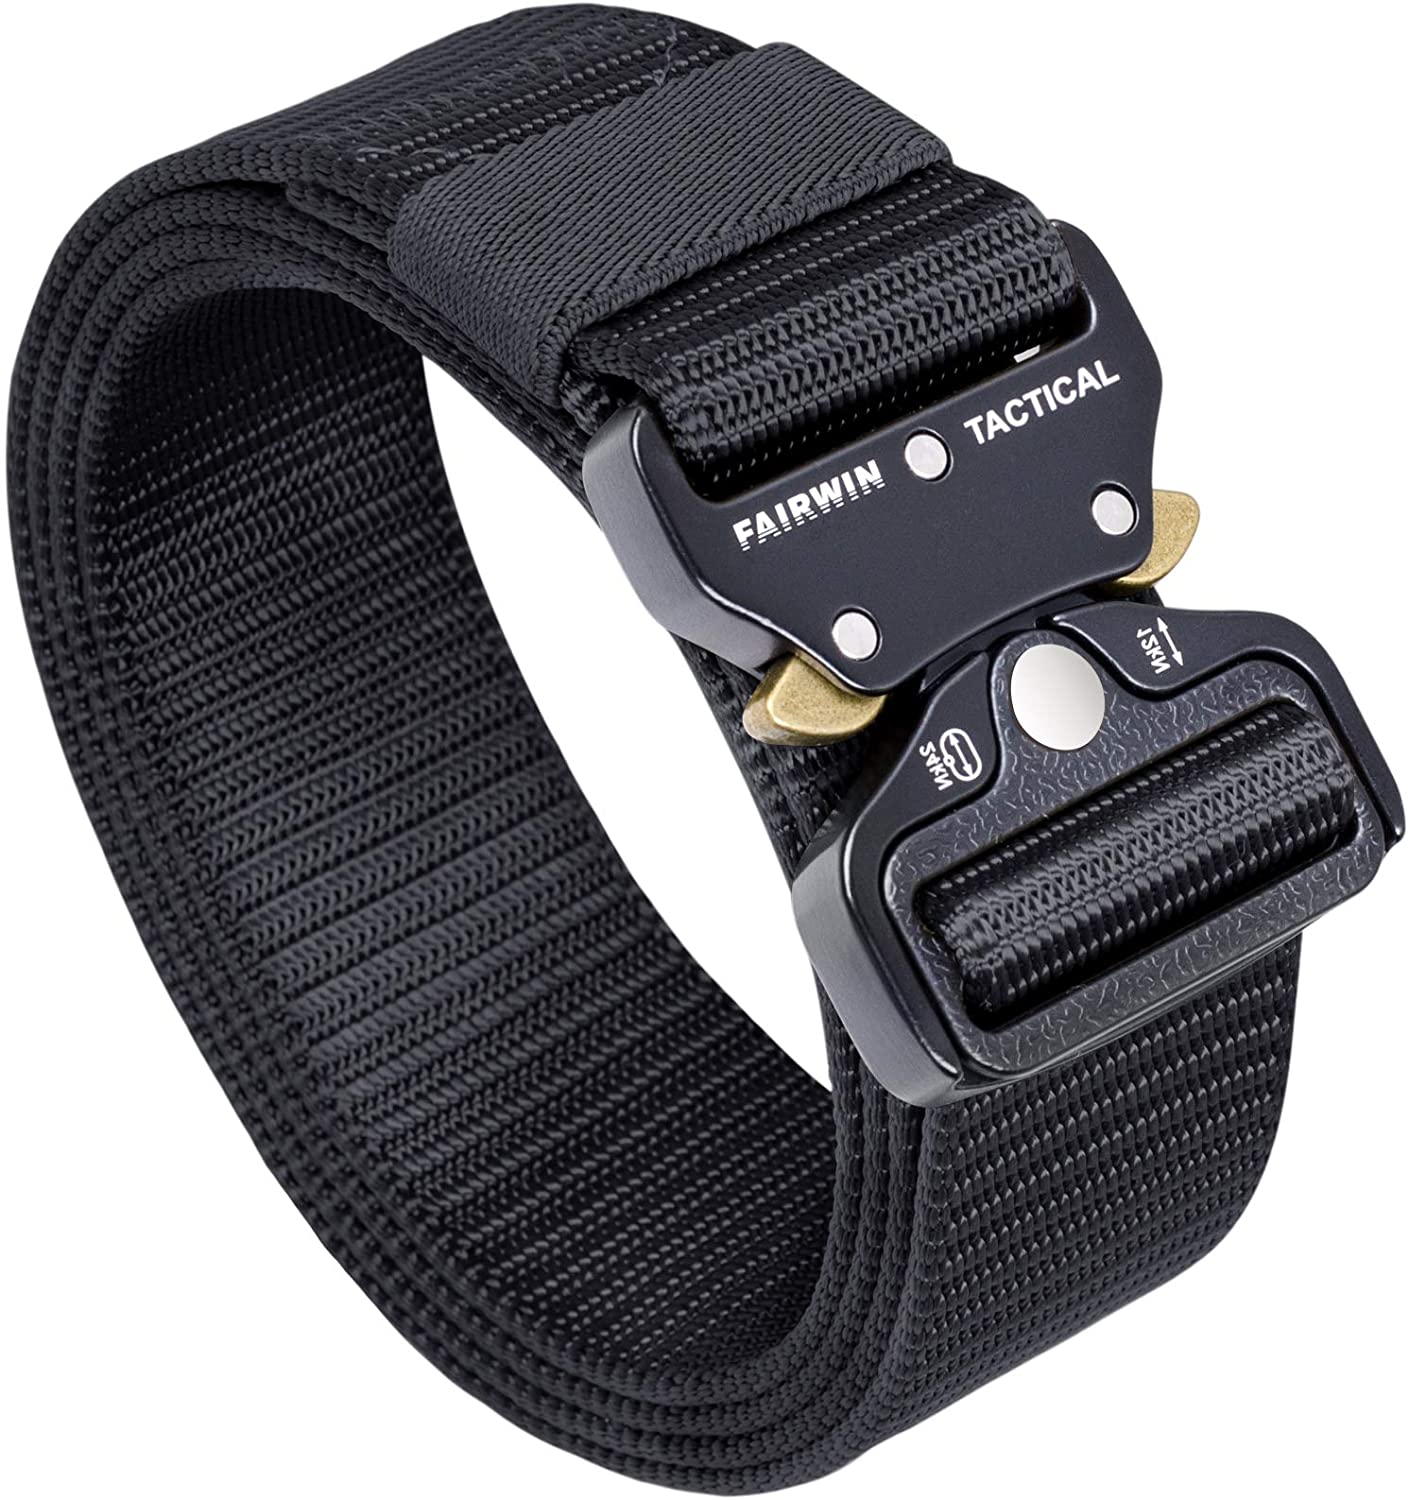 FAIRWIN Tactical Belt Military Style Webbing Riggers Be free Web Ranking TOP15 Gun